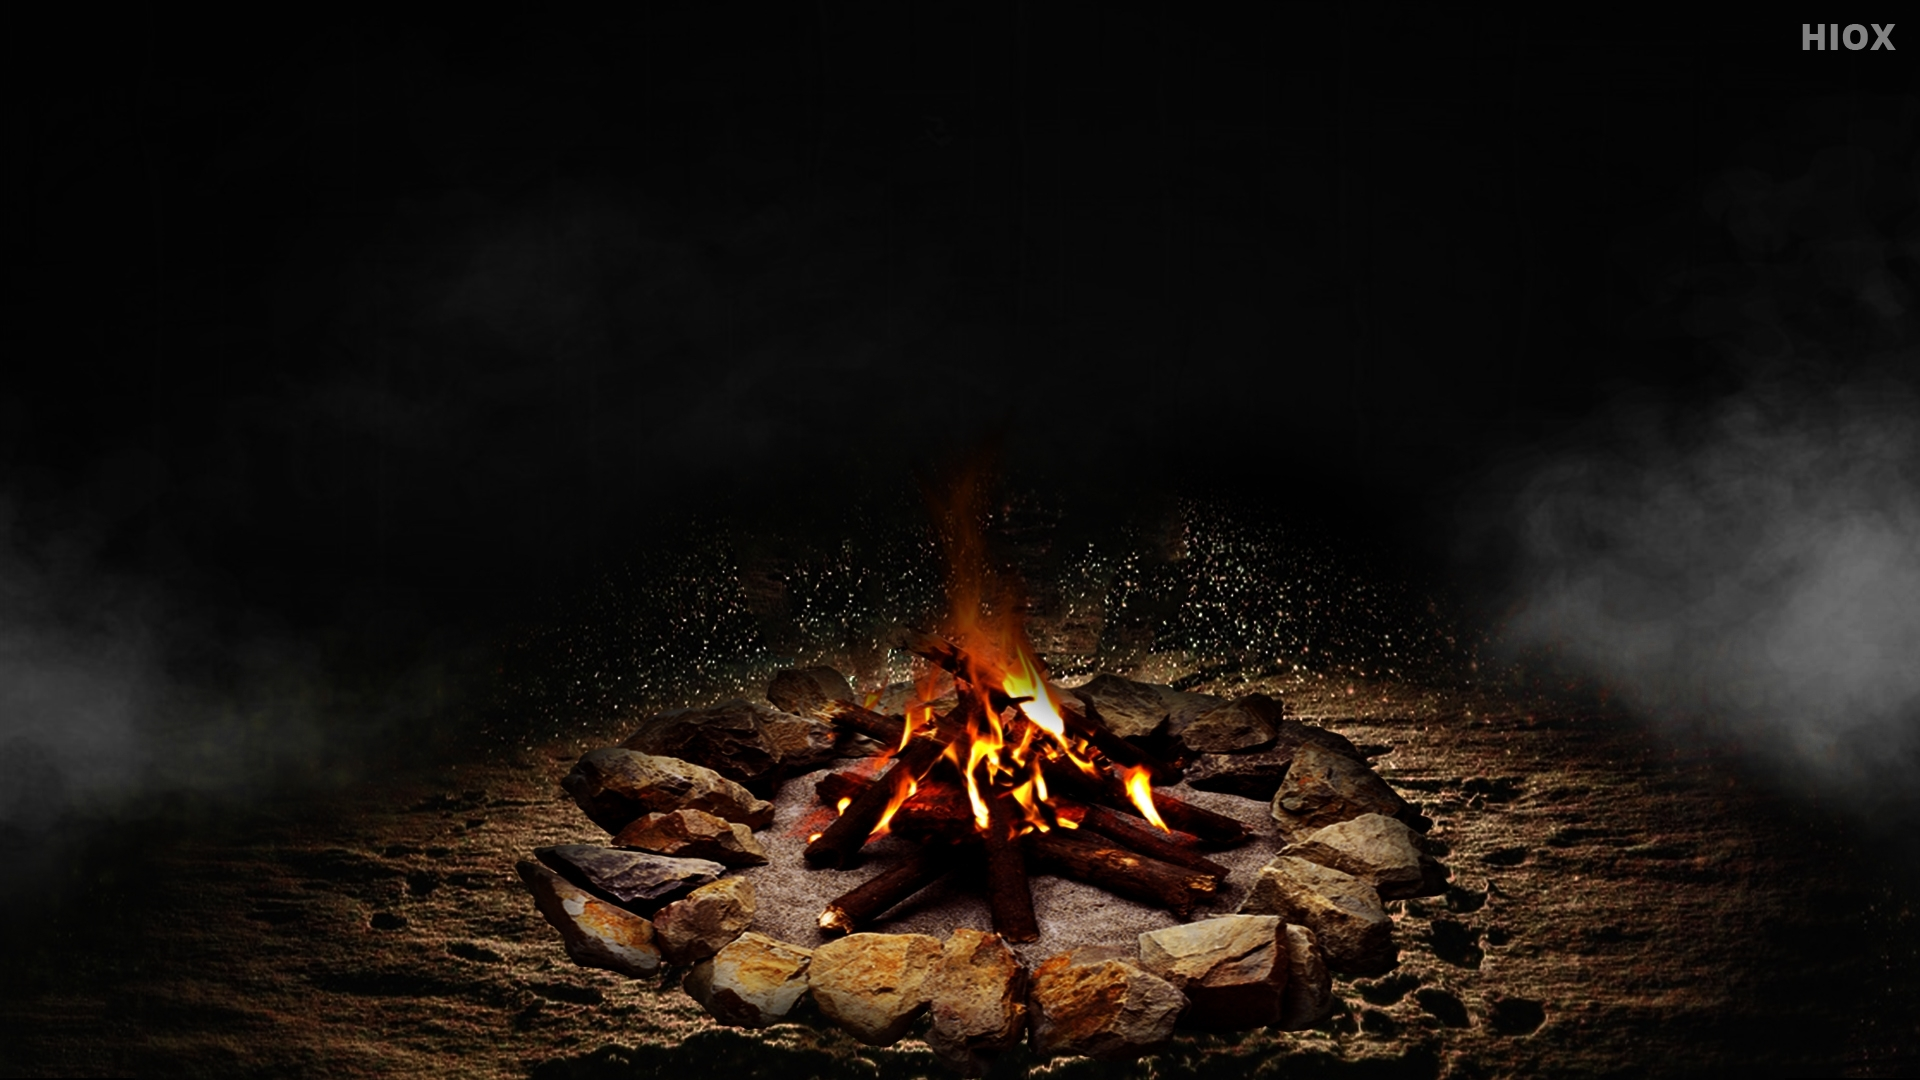 Warmth Camp Fire HD Wallpaper Image